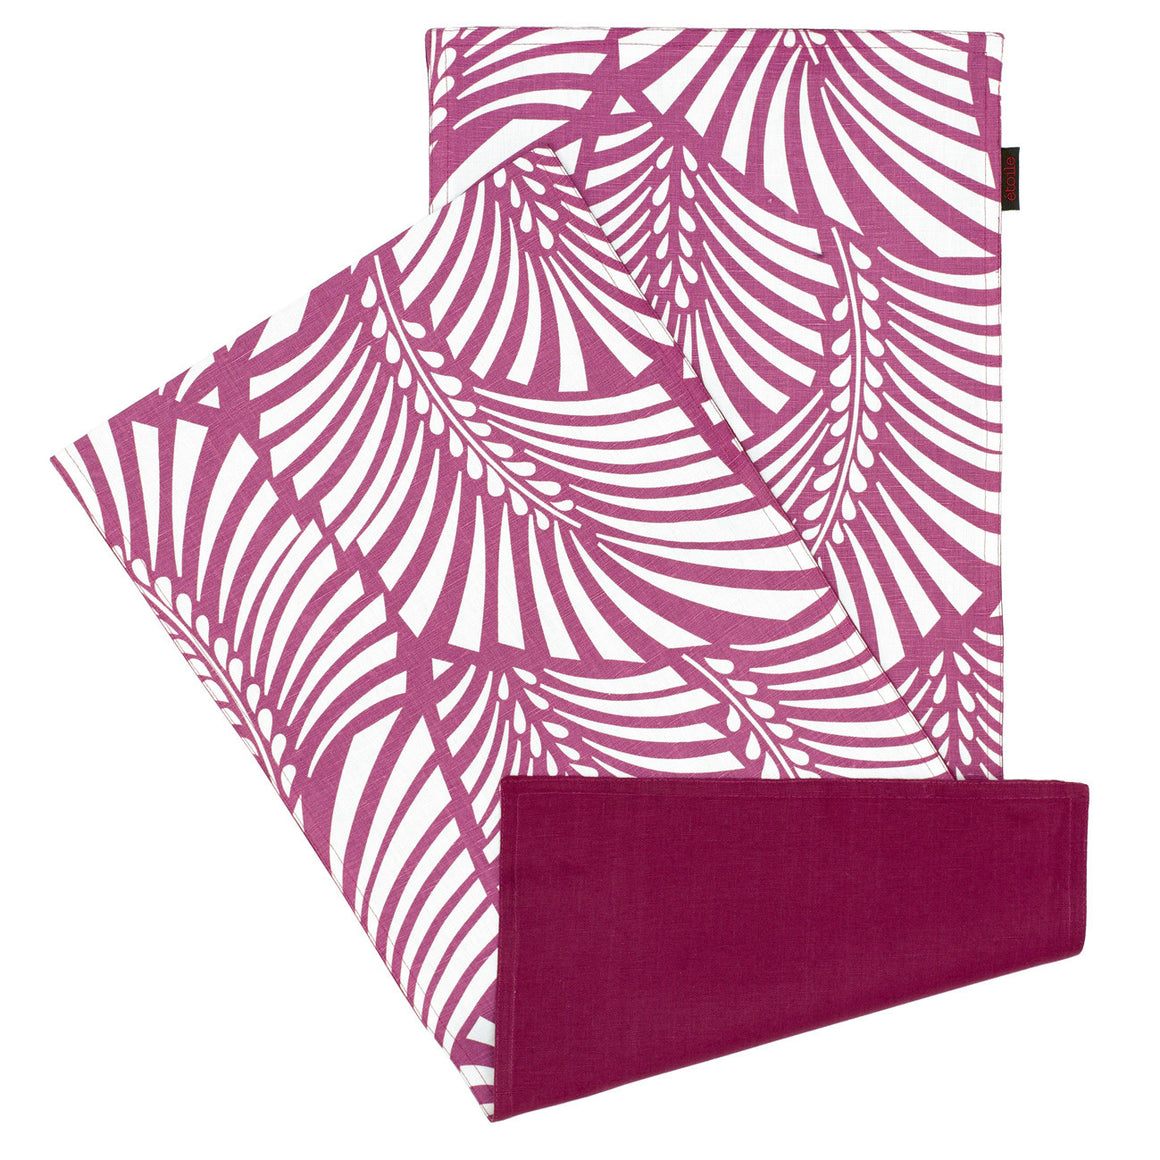 Oscar Graphic Leaf Pattern Reversible Table Runner in Dark Heather Pink